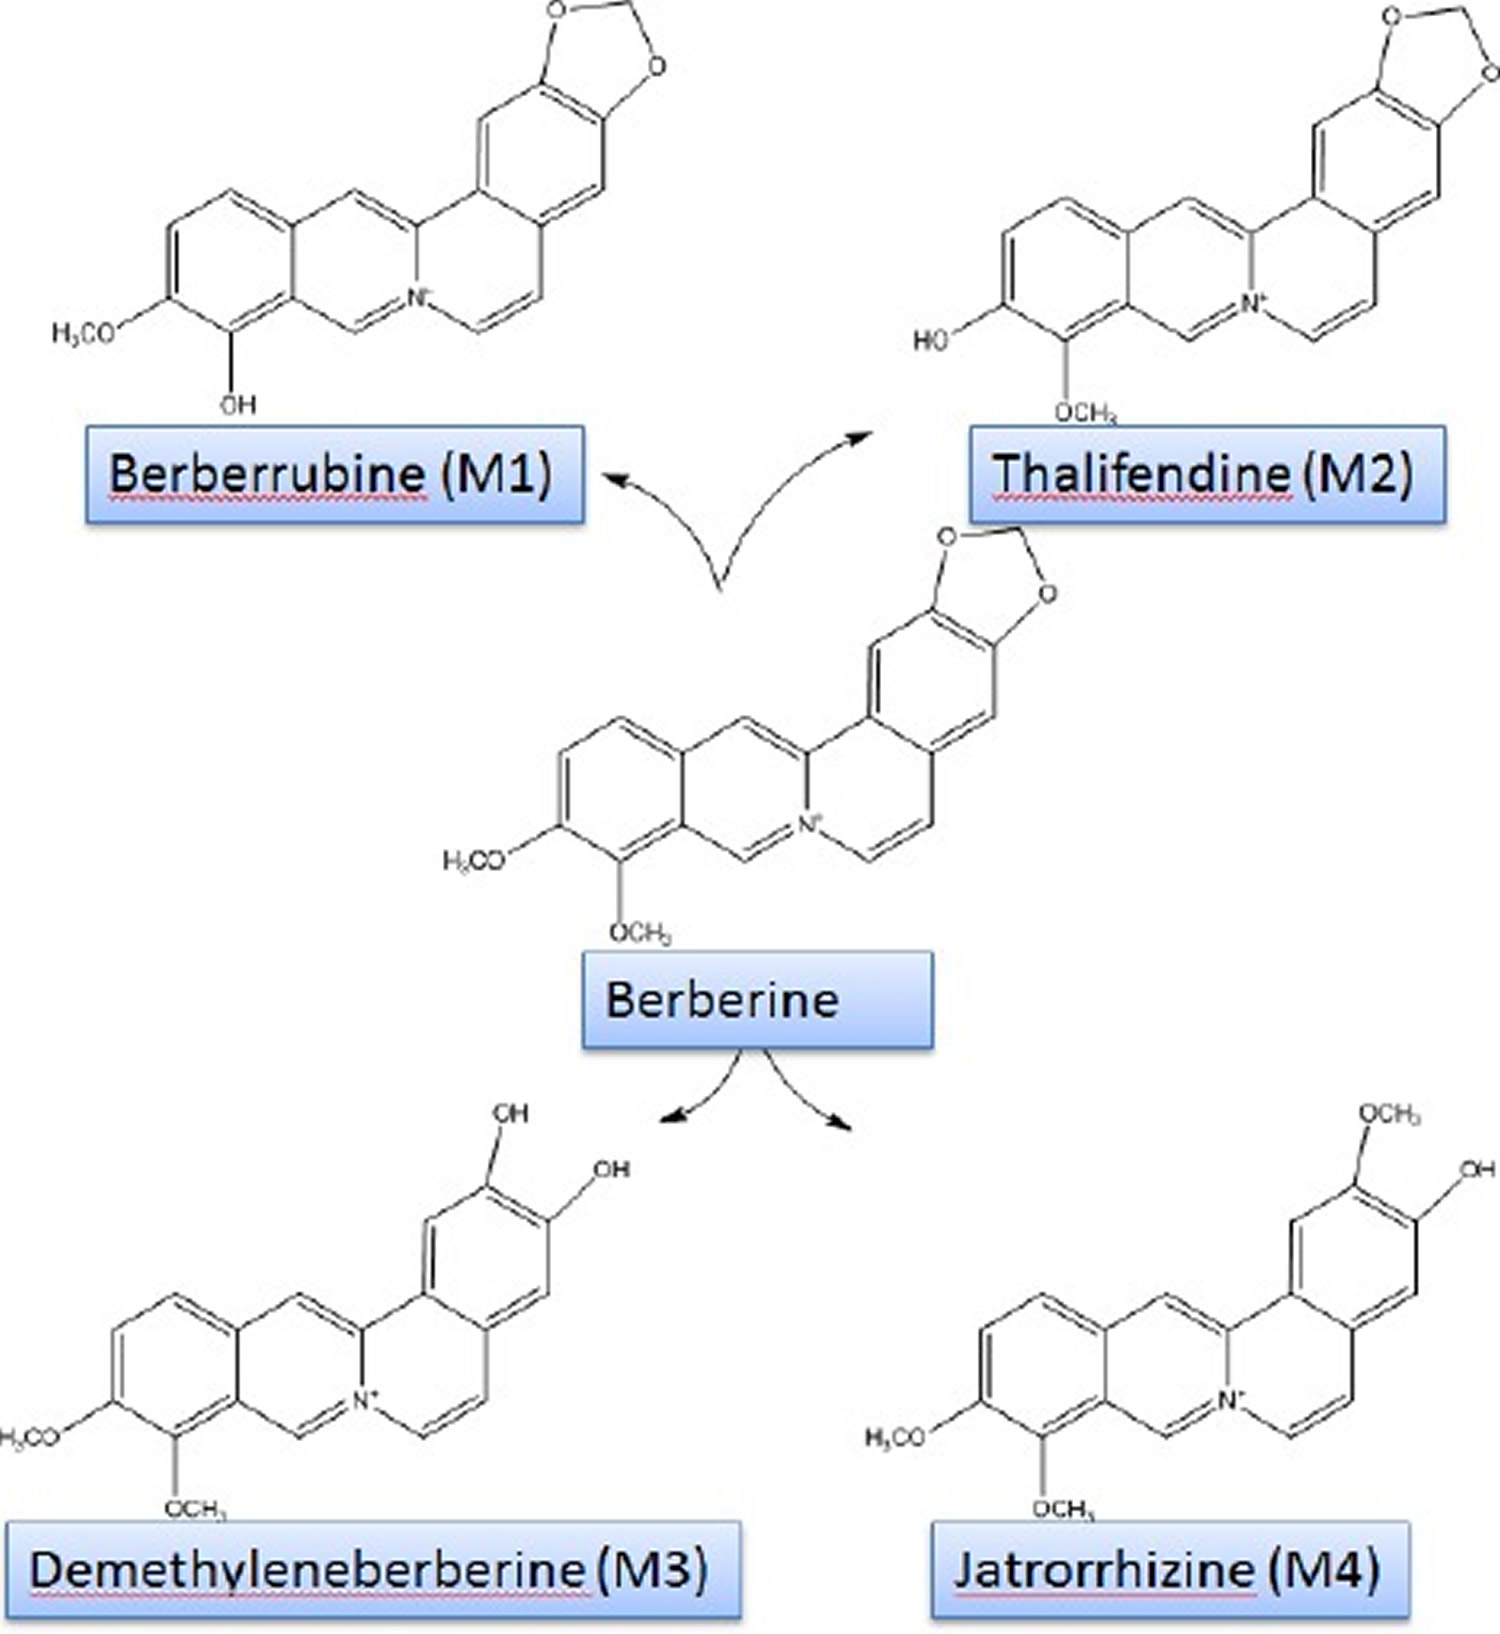 berberine chemical structure and its metabolites